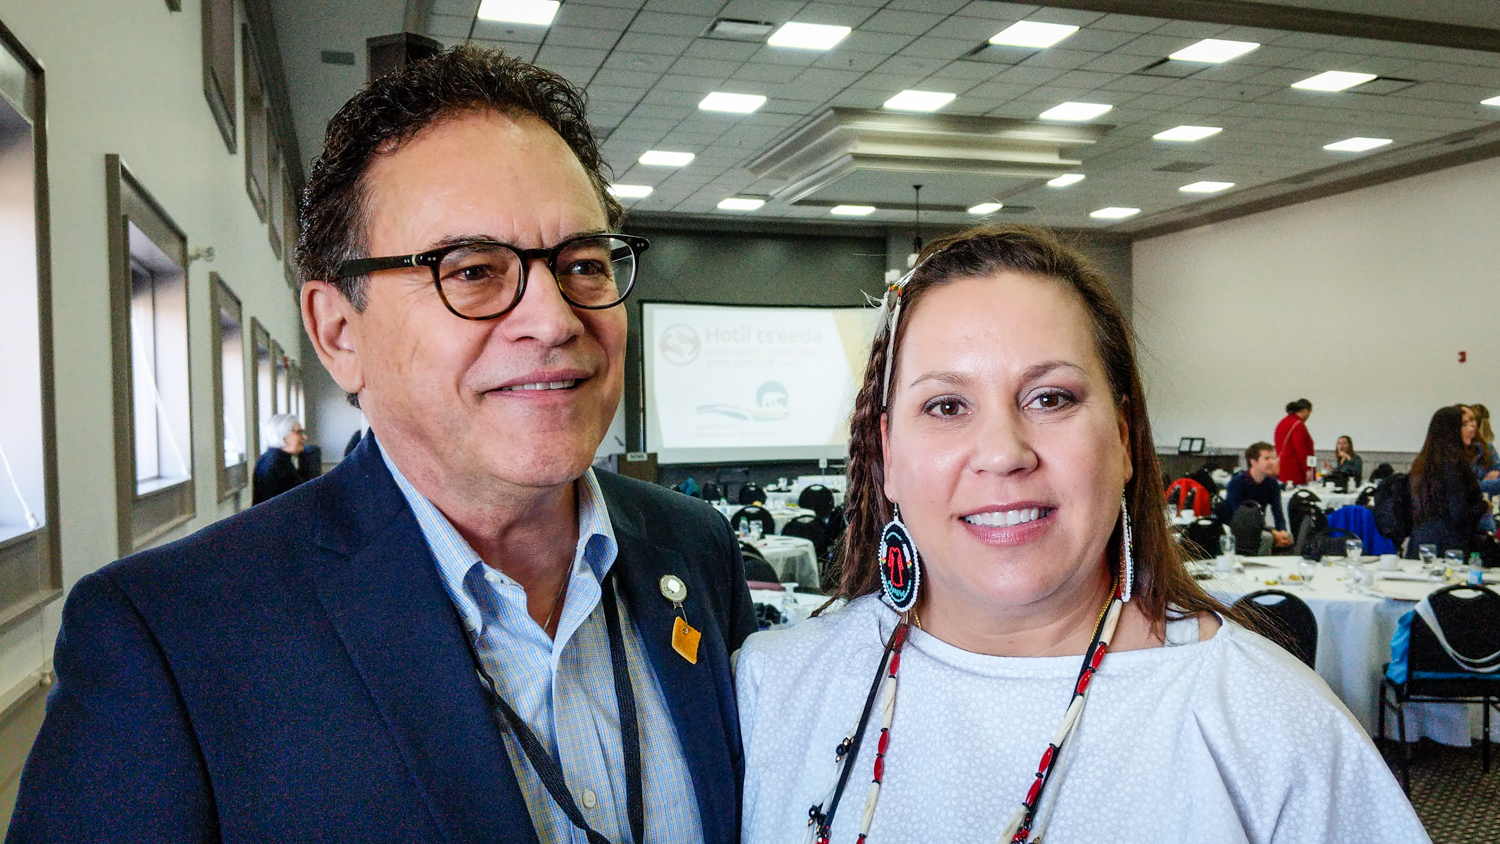 Larry Bremner and Nicole Bowman appear at the Canadian Evaluation Society's 2018 symposium in Yellowknife